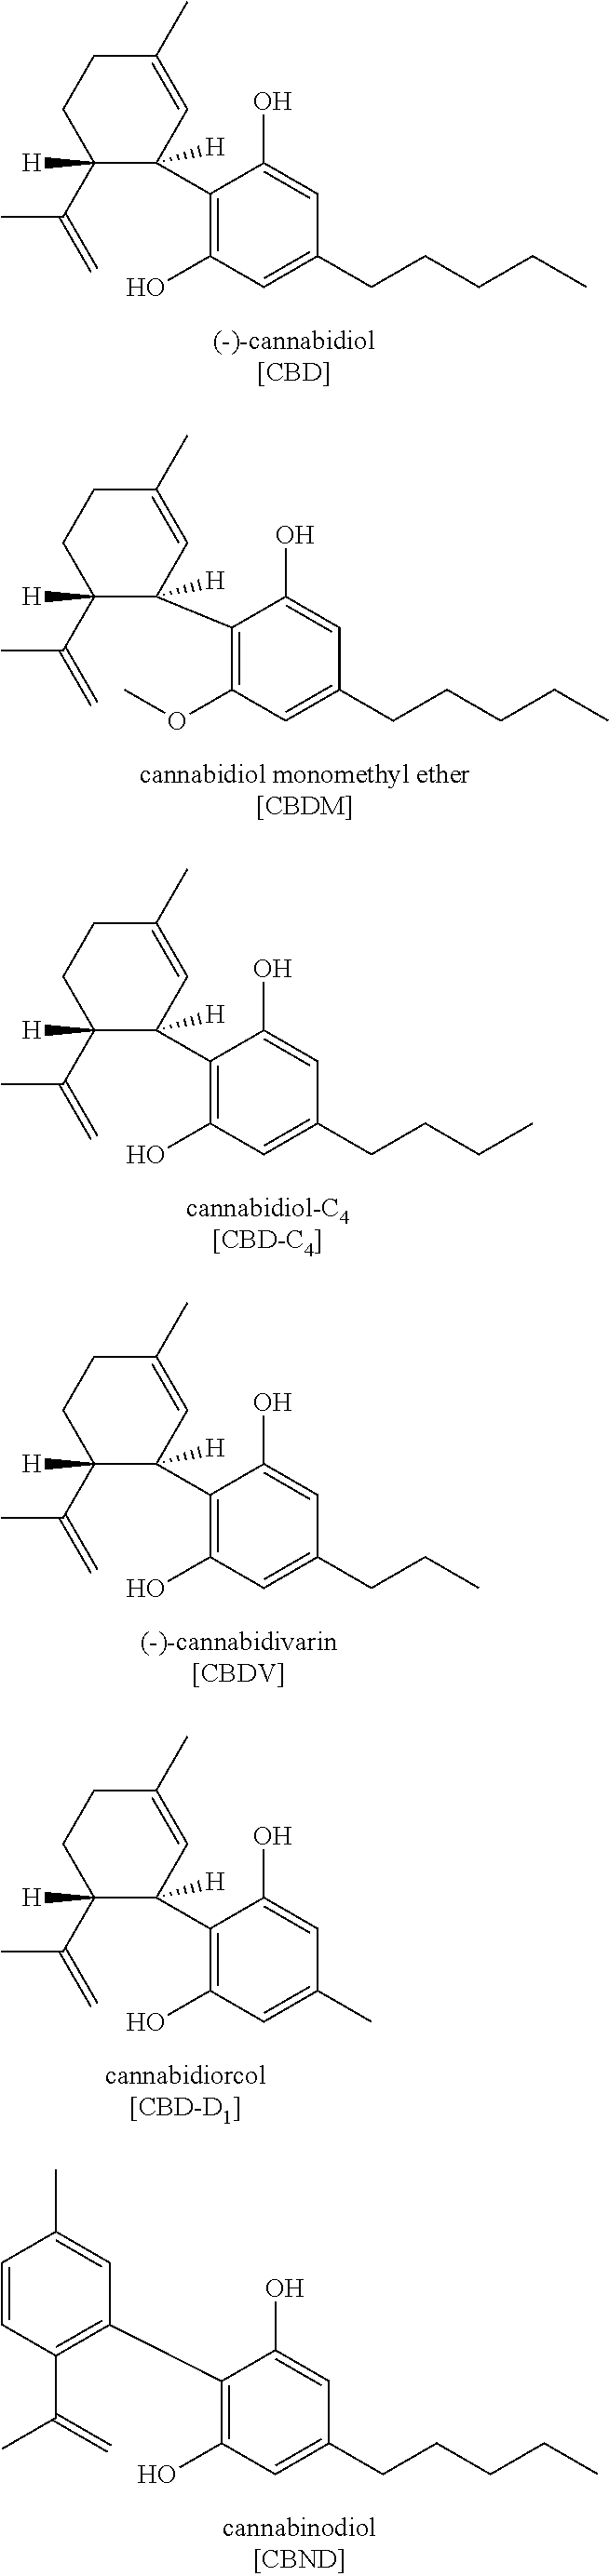 us20160346339a1 methods for preparation of cannabis oil extracts